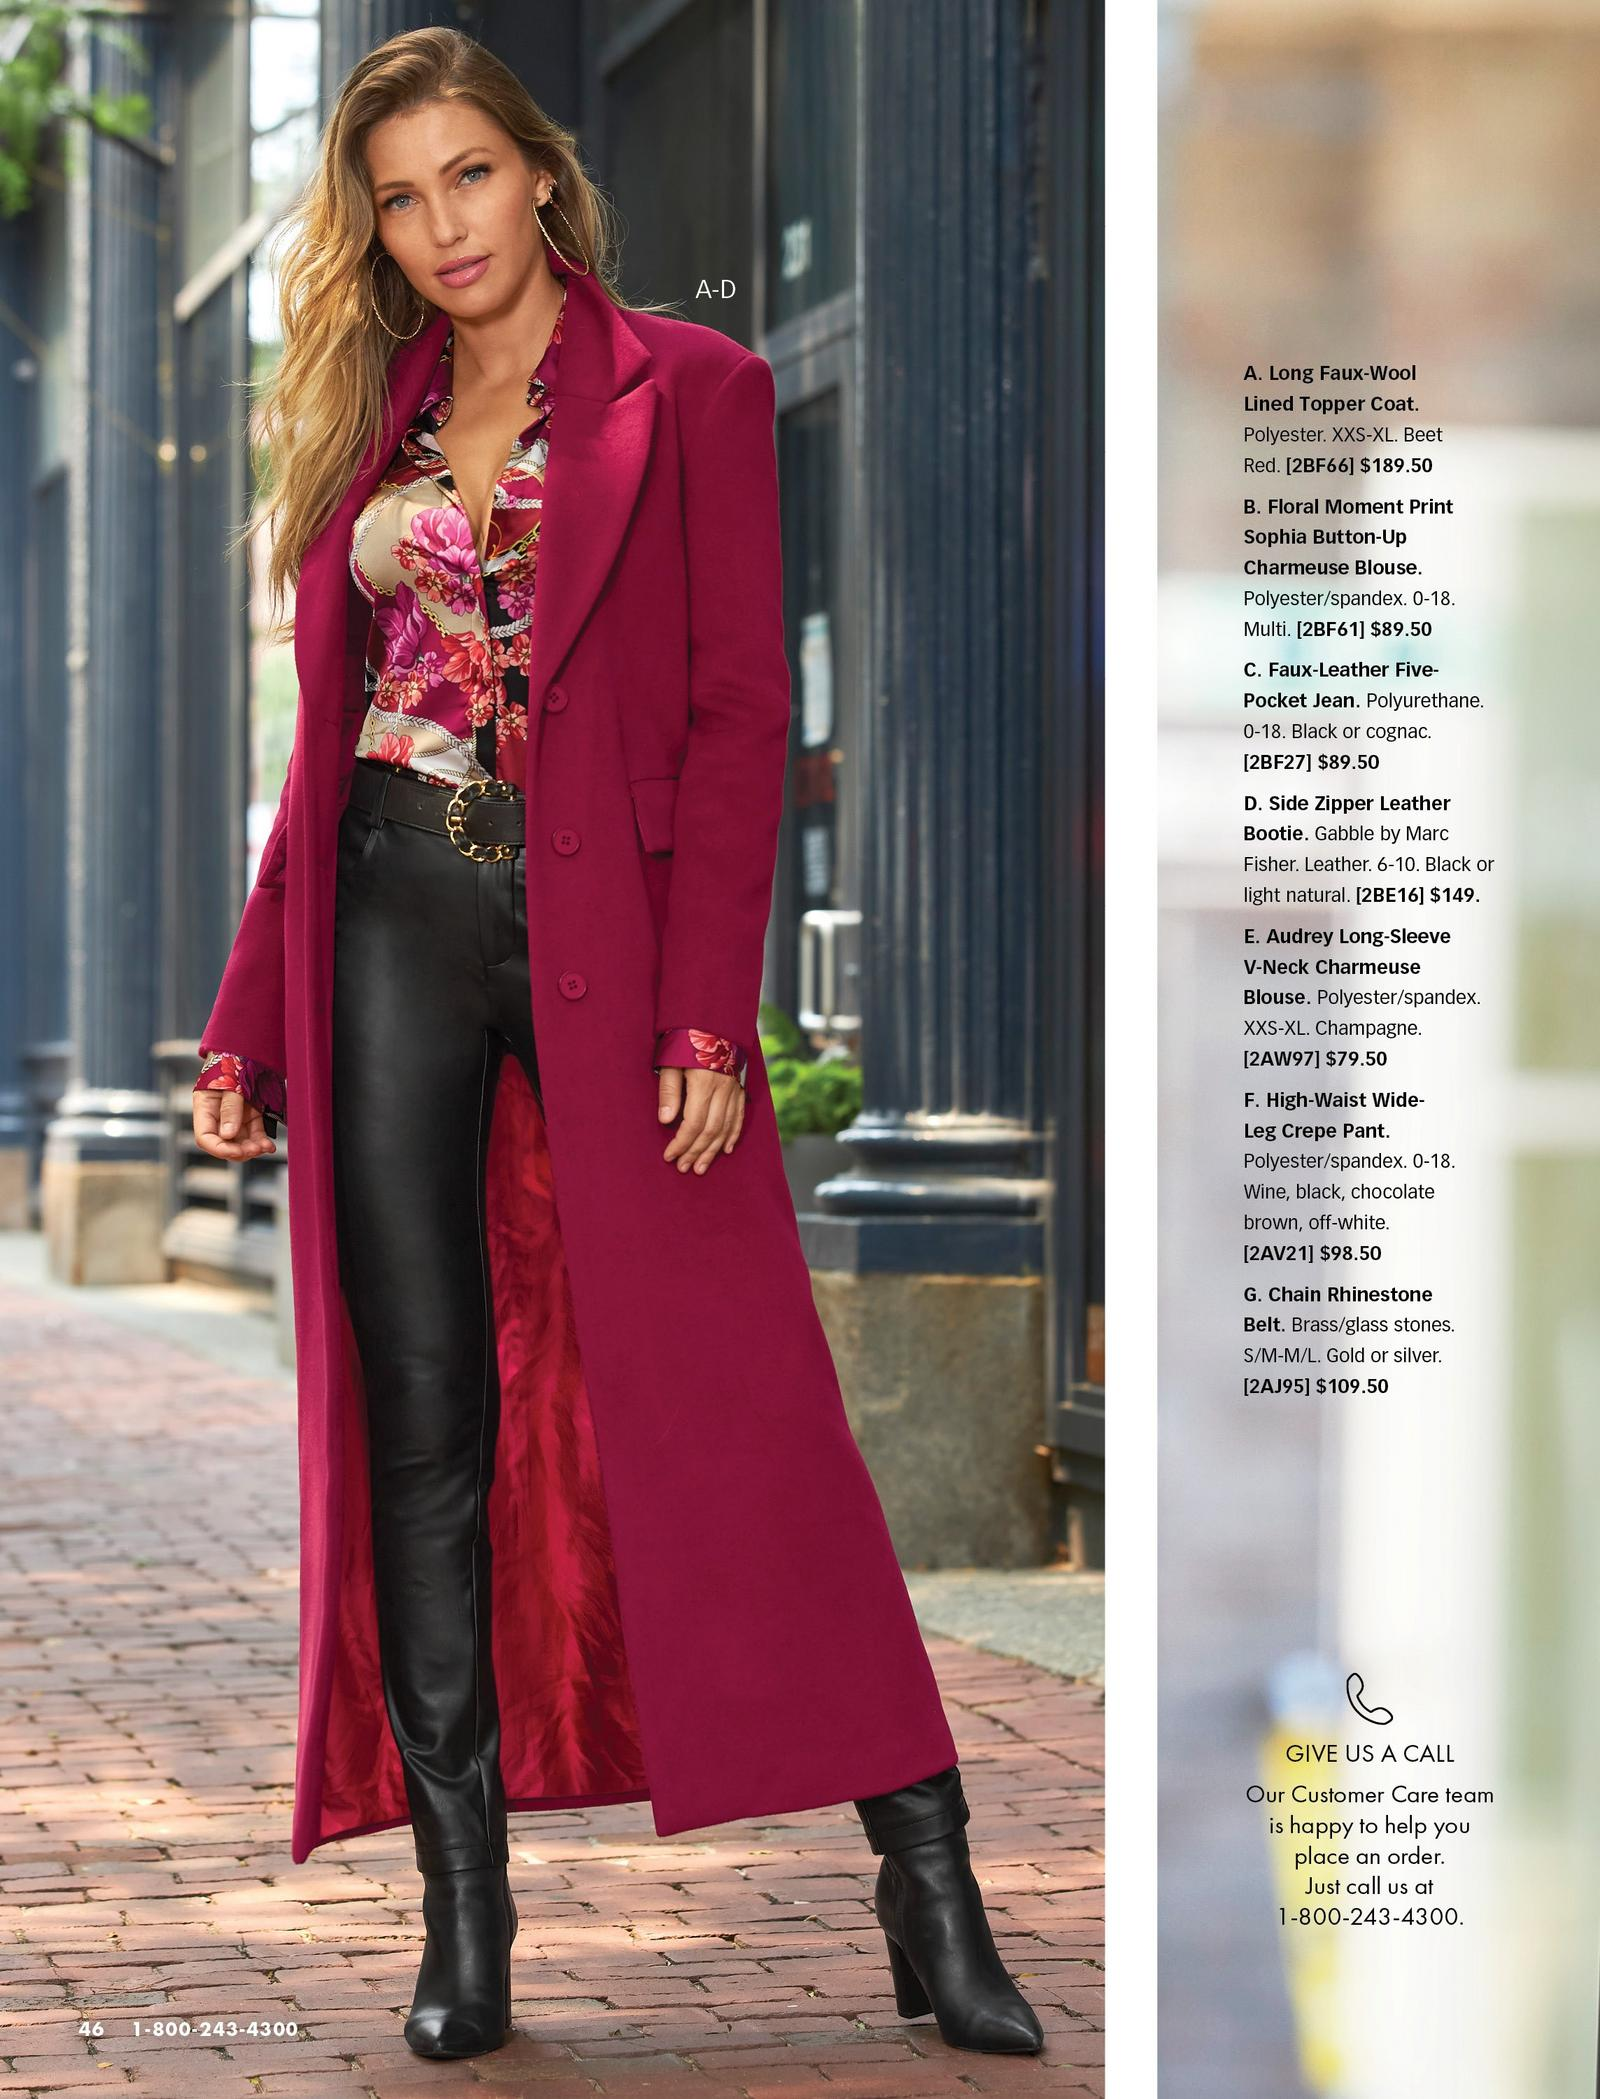 model wearing a beet red long faux-wool topper coat, multicolored floral chain print button-down blouse, black belt, black faux-leather jeans, and black leather booties.